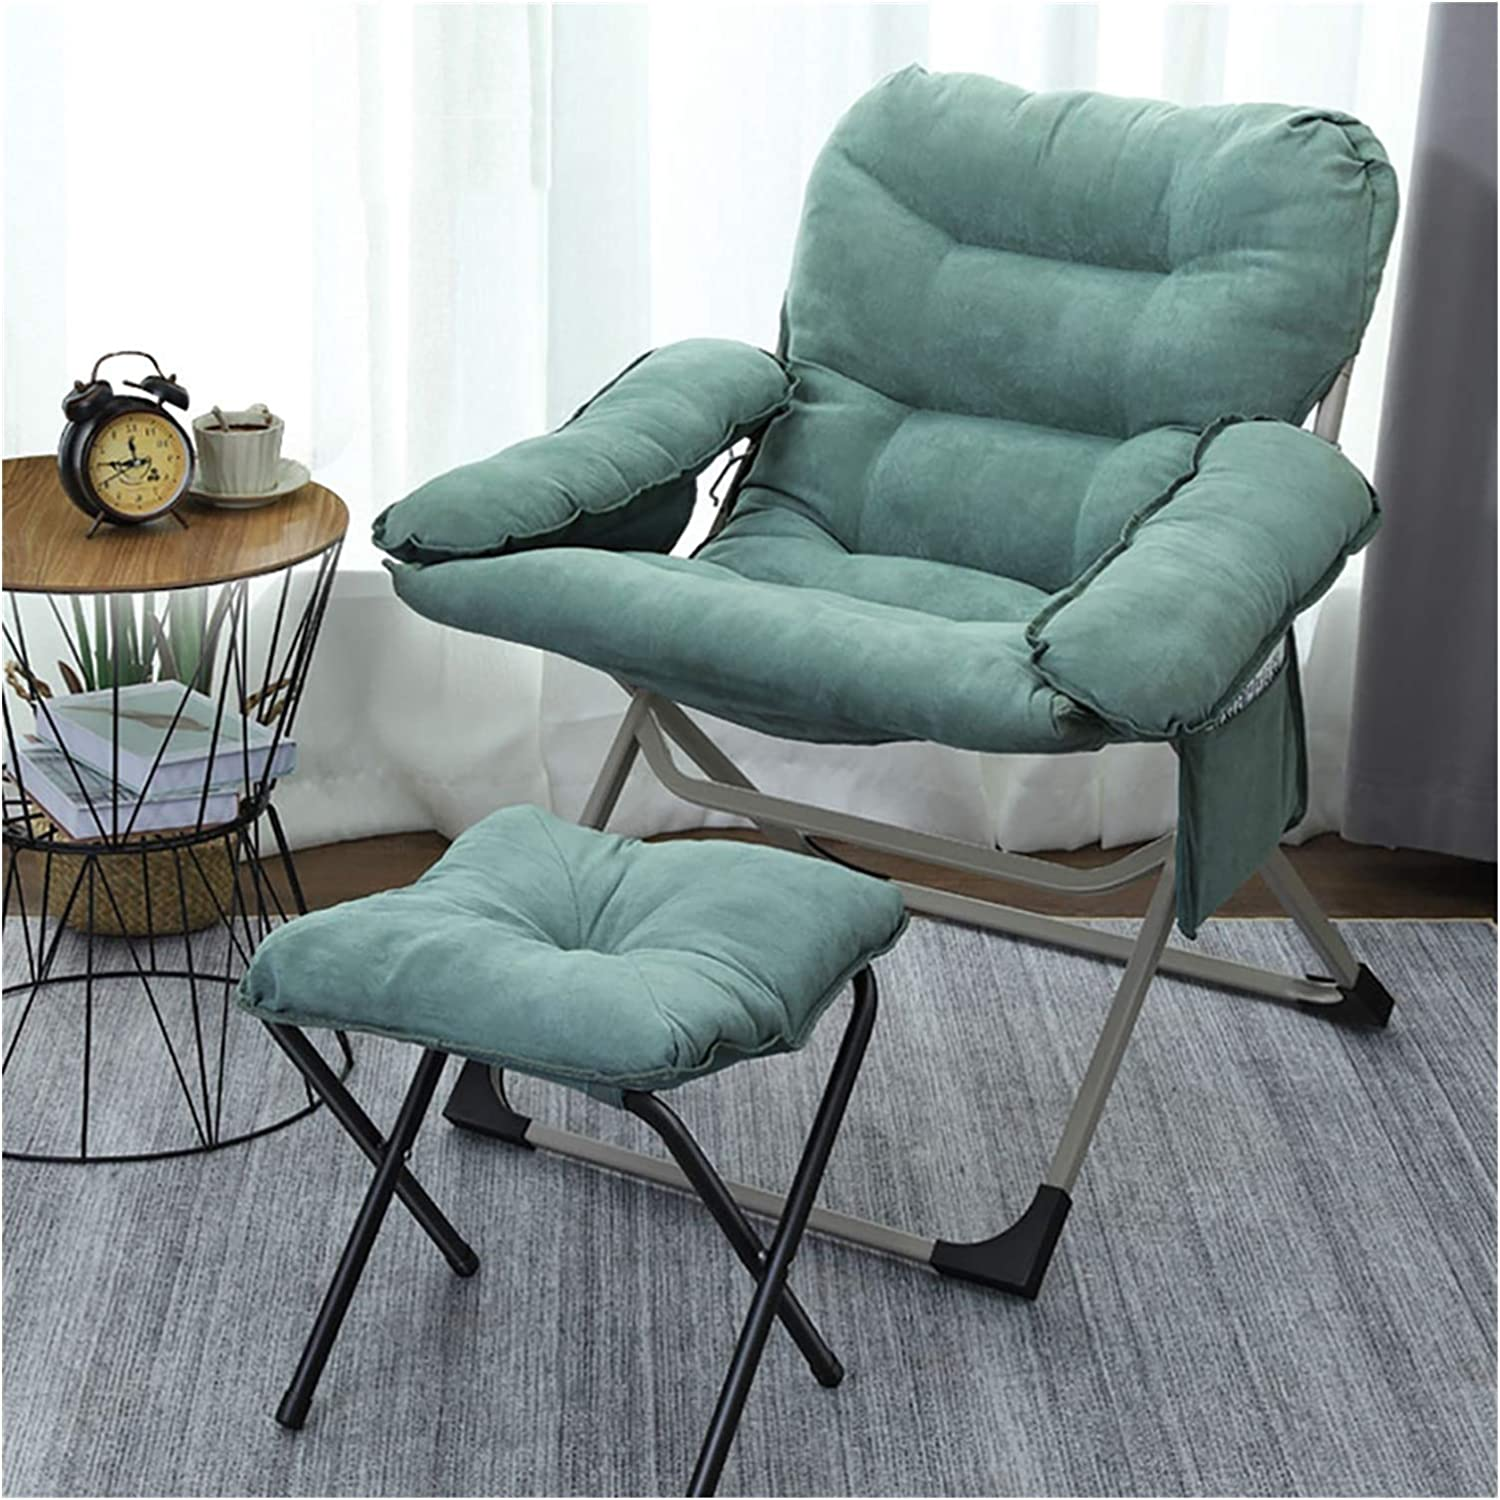 ZWJLIZI Folding Chair Home Leisure Balcony Lazy Sofa Inventory cleanup A surprise price is realized selling sale Brea Lunch